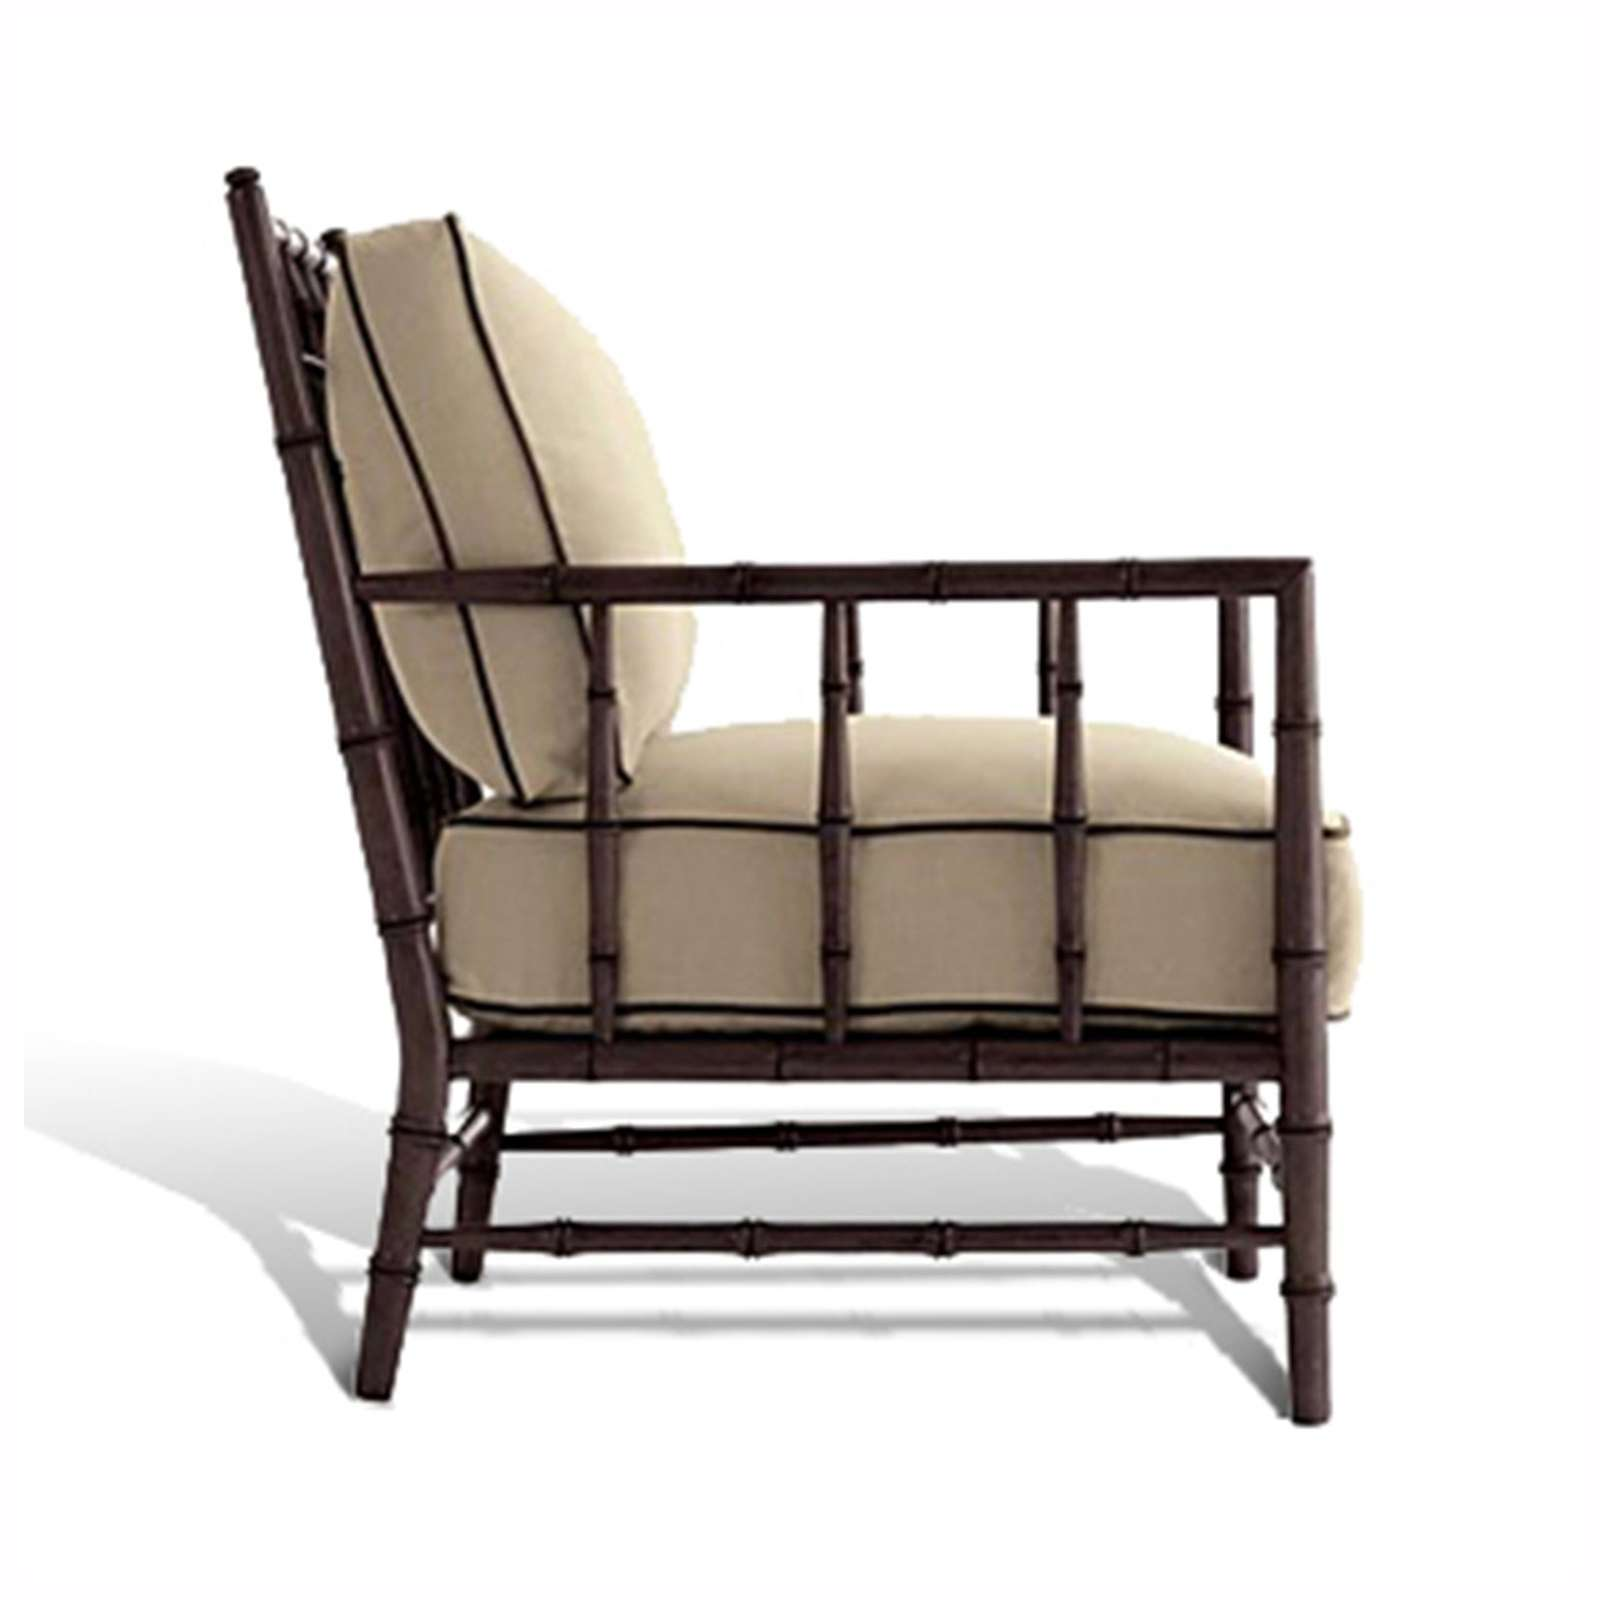 CAPE COLONY ARM CHAIR 04 - STUART MEMBERY HOME COLLECTION